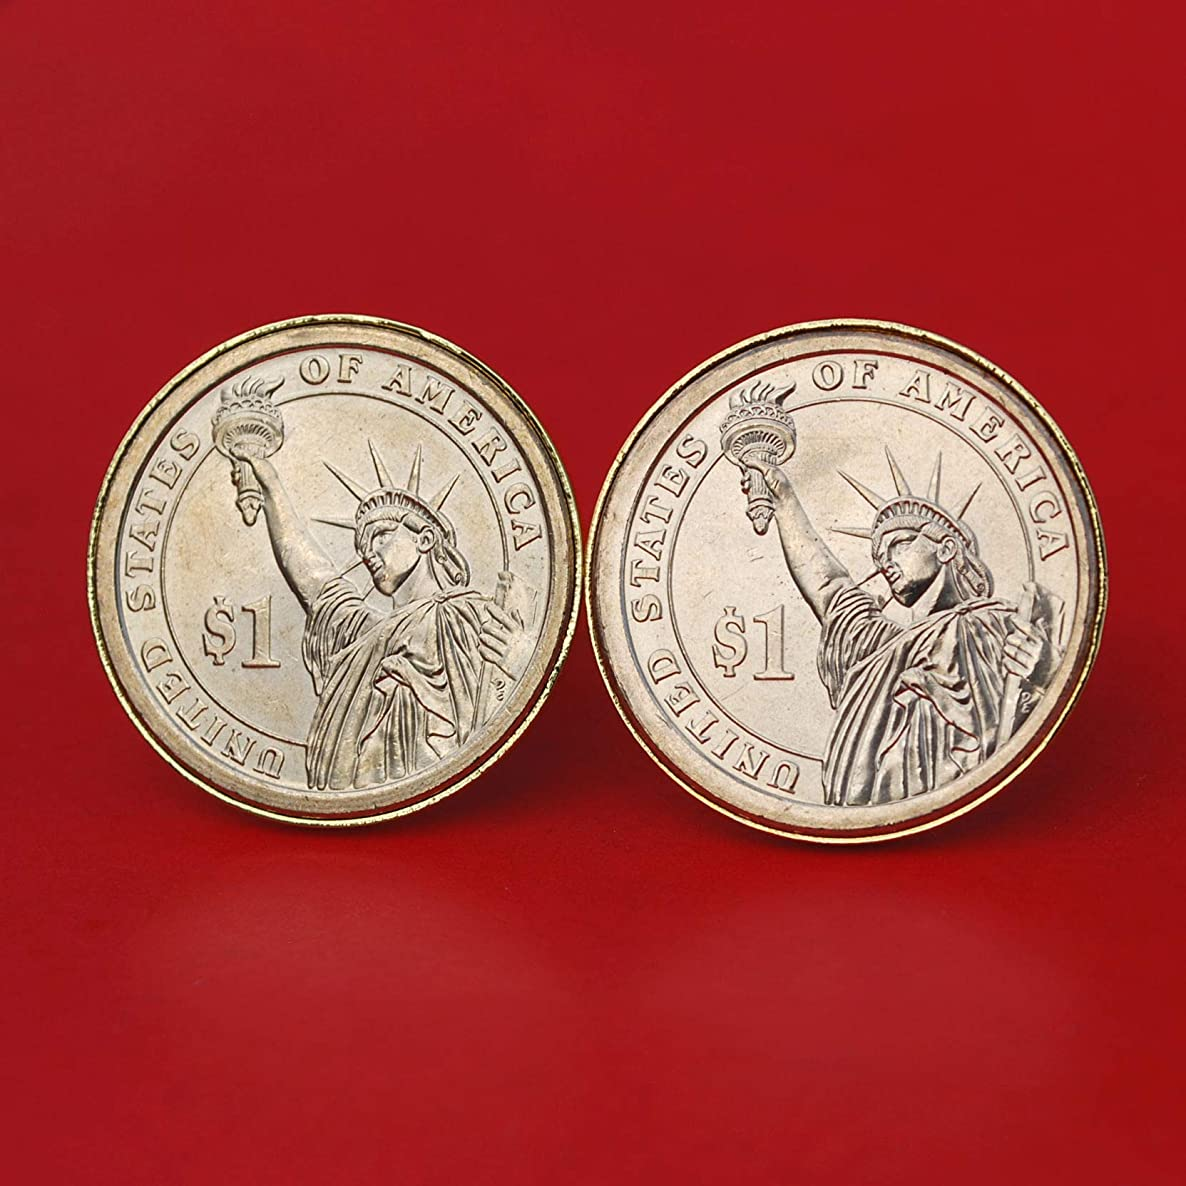 US 2000 ~ Current Year Presidential Dollar BU Uncirculated Coin Gold Plated Cufflinks NEW - the Statue of Liberty